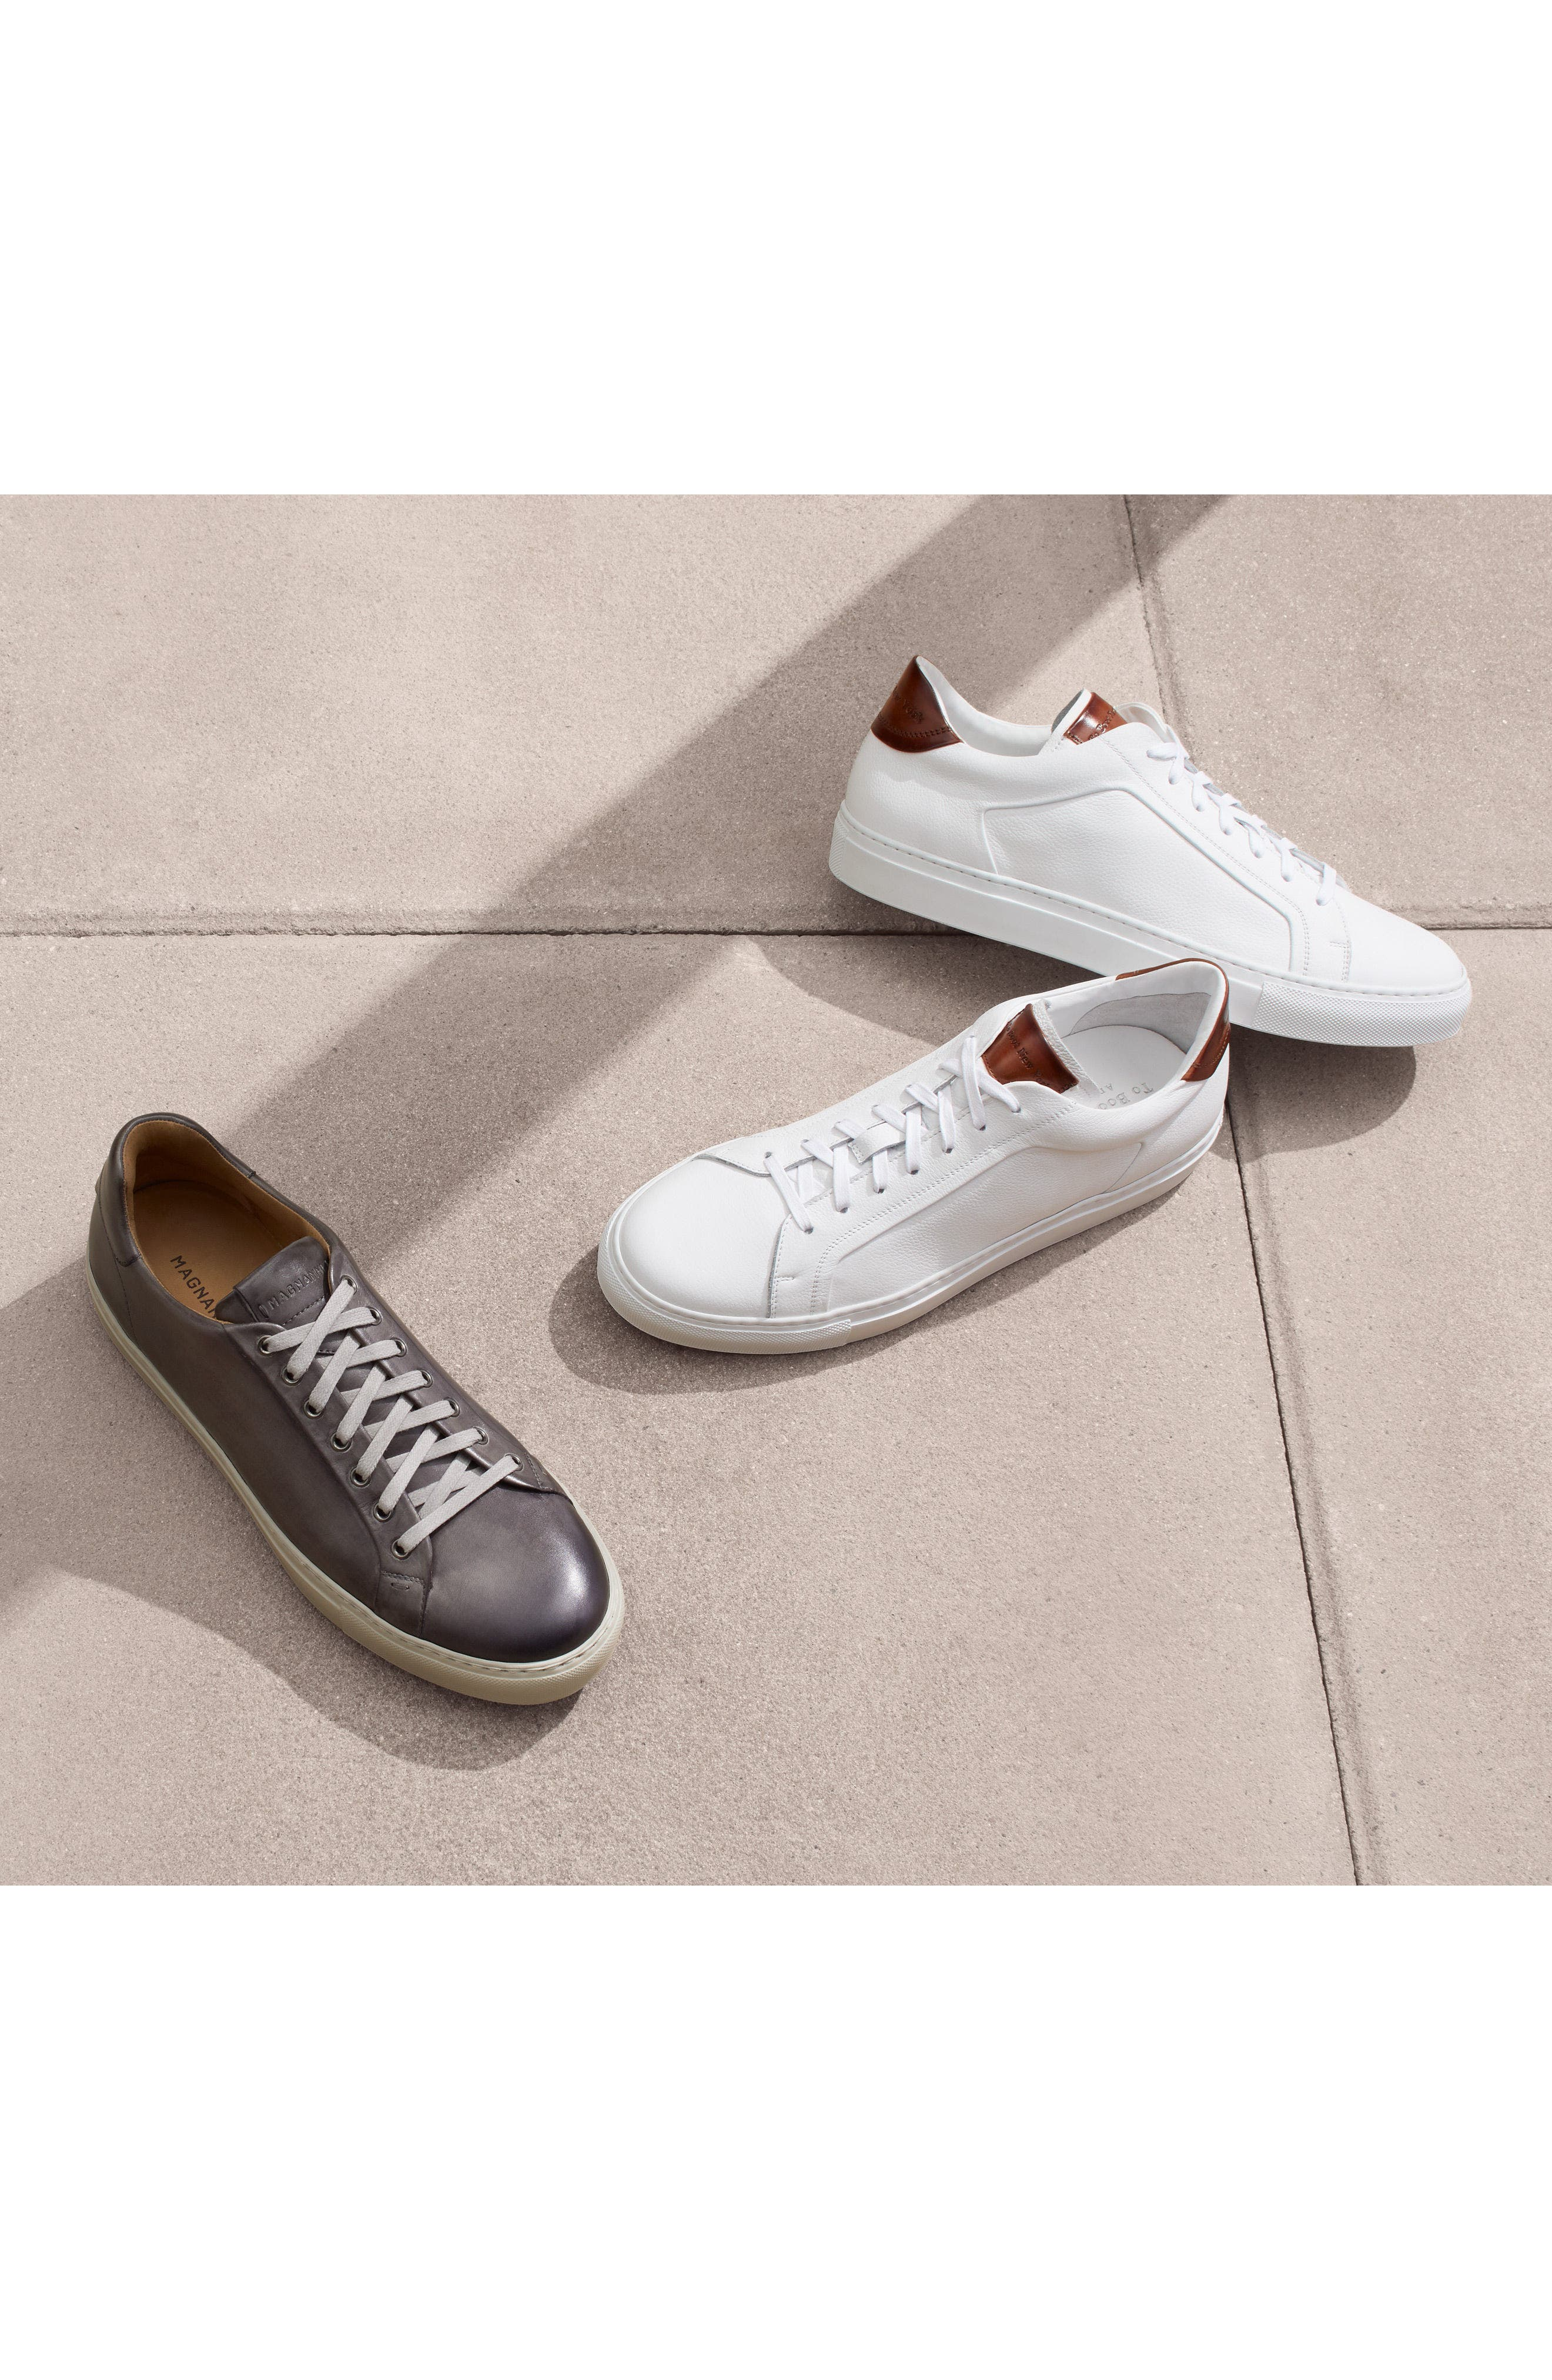 TO BOOT NEW YORK, Carlin Sneaker, Alternate thumbnail 7, color, WHITE/ TAN LEATHER